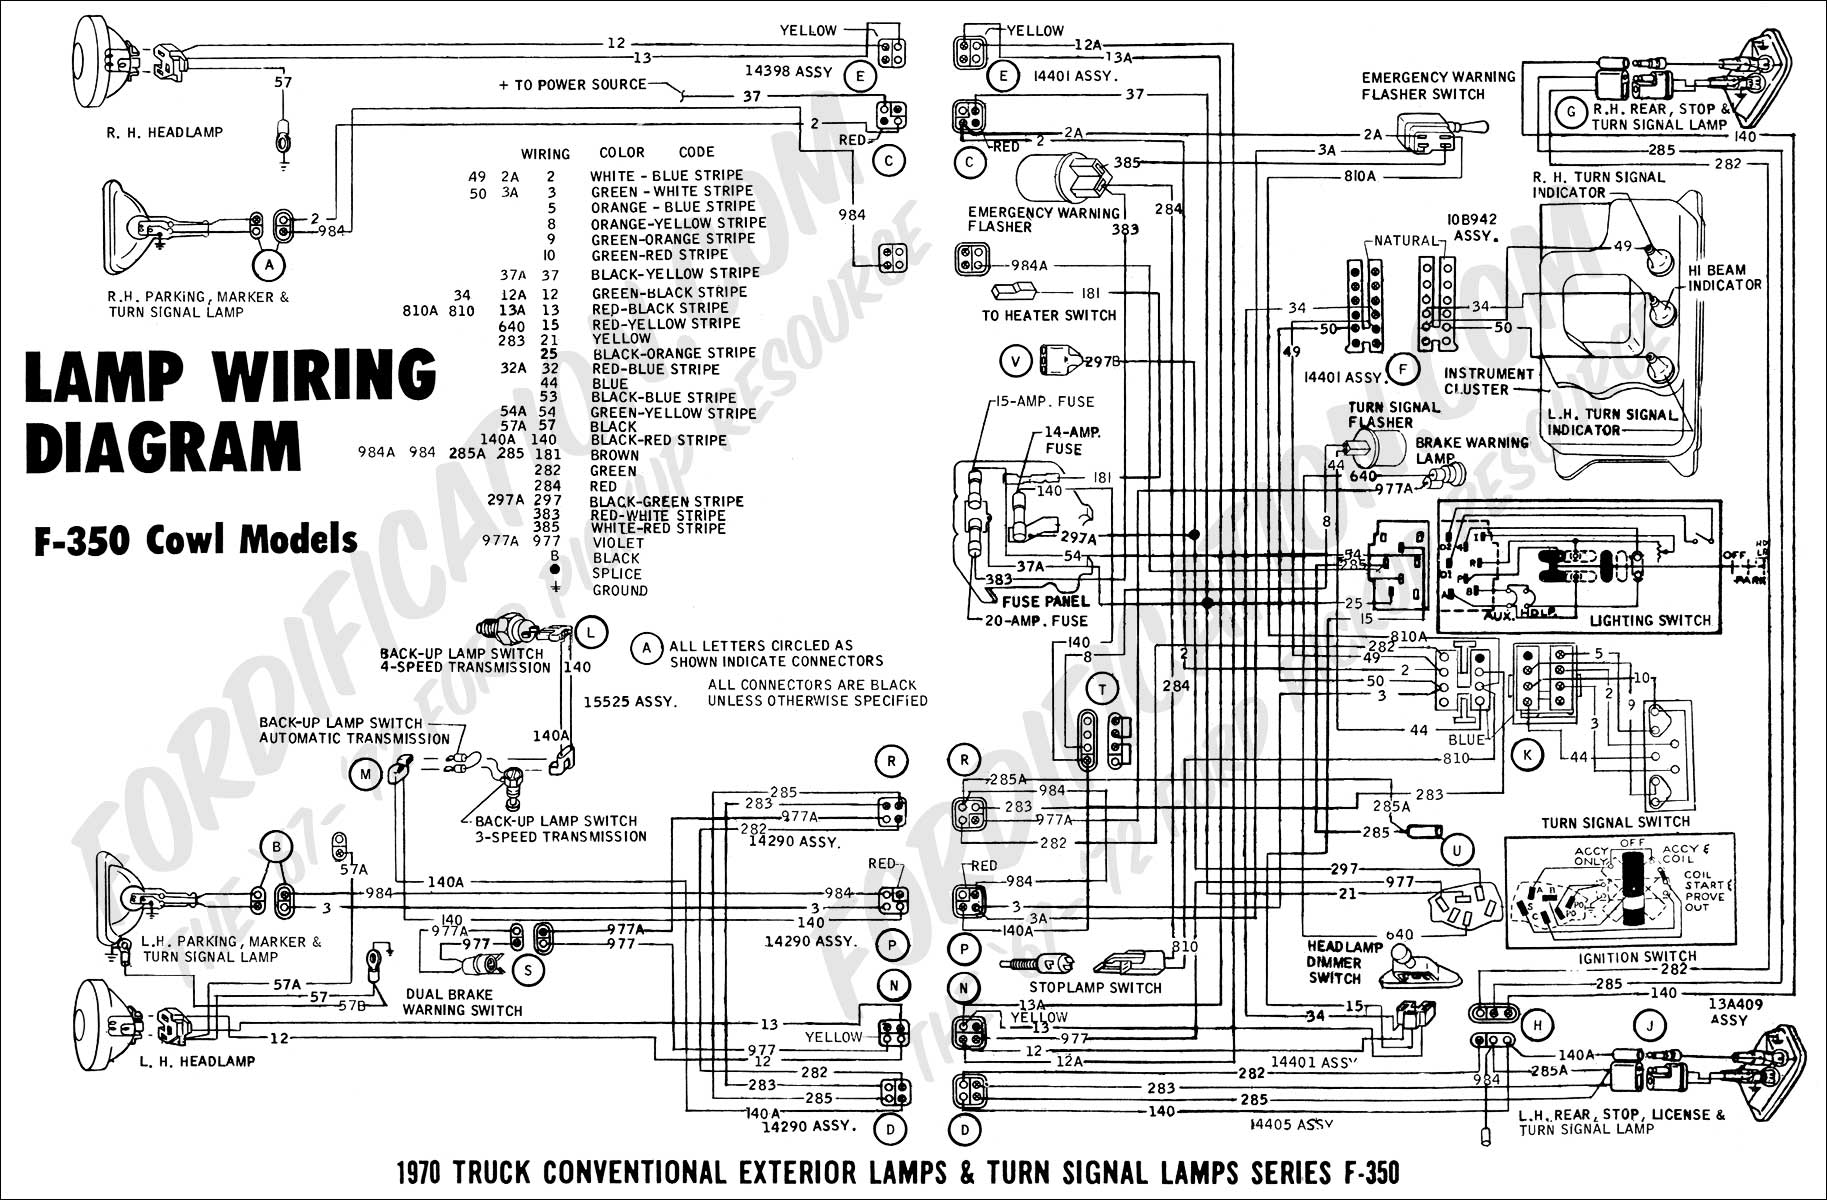 1988 F 350 Wire Harness Wiring Library 88 Ford Alternator Diagram 2006 Mustang Headlight Just Data 1979 150